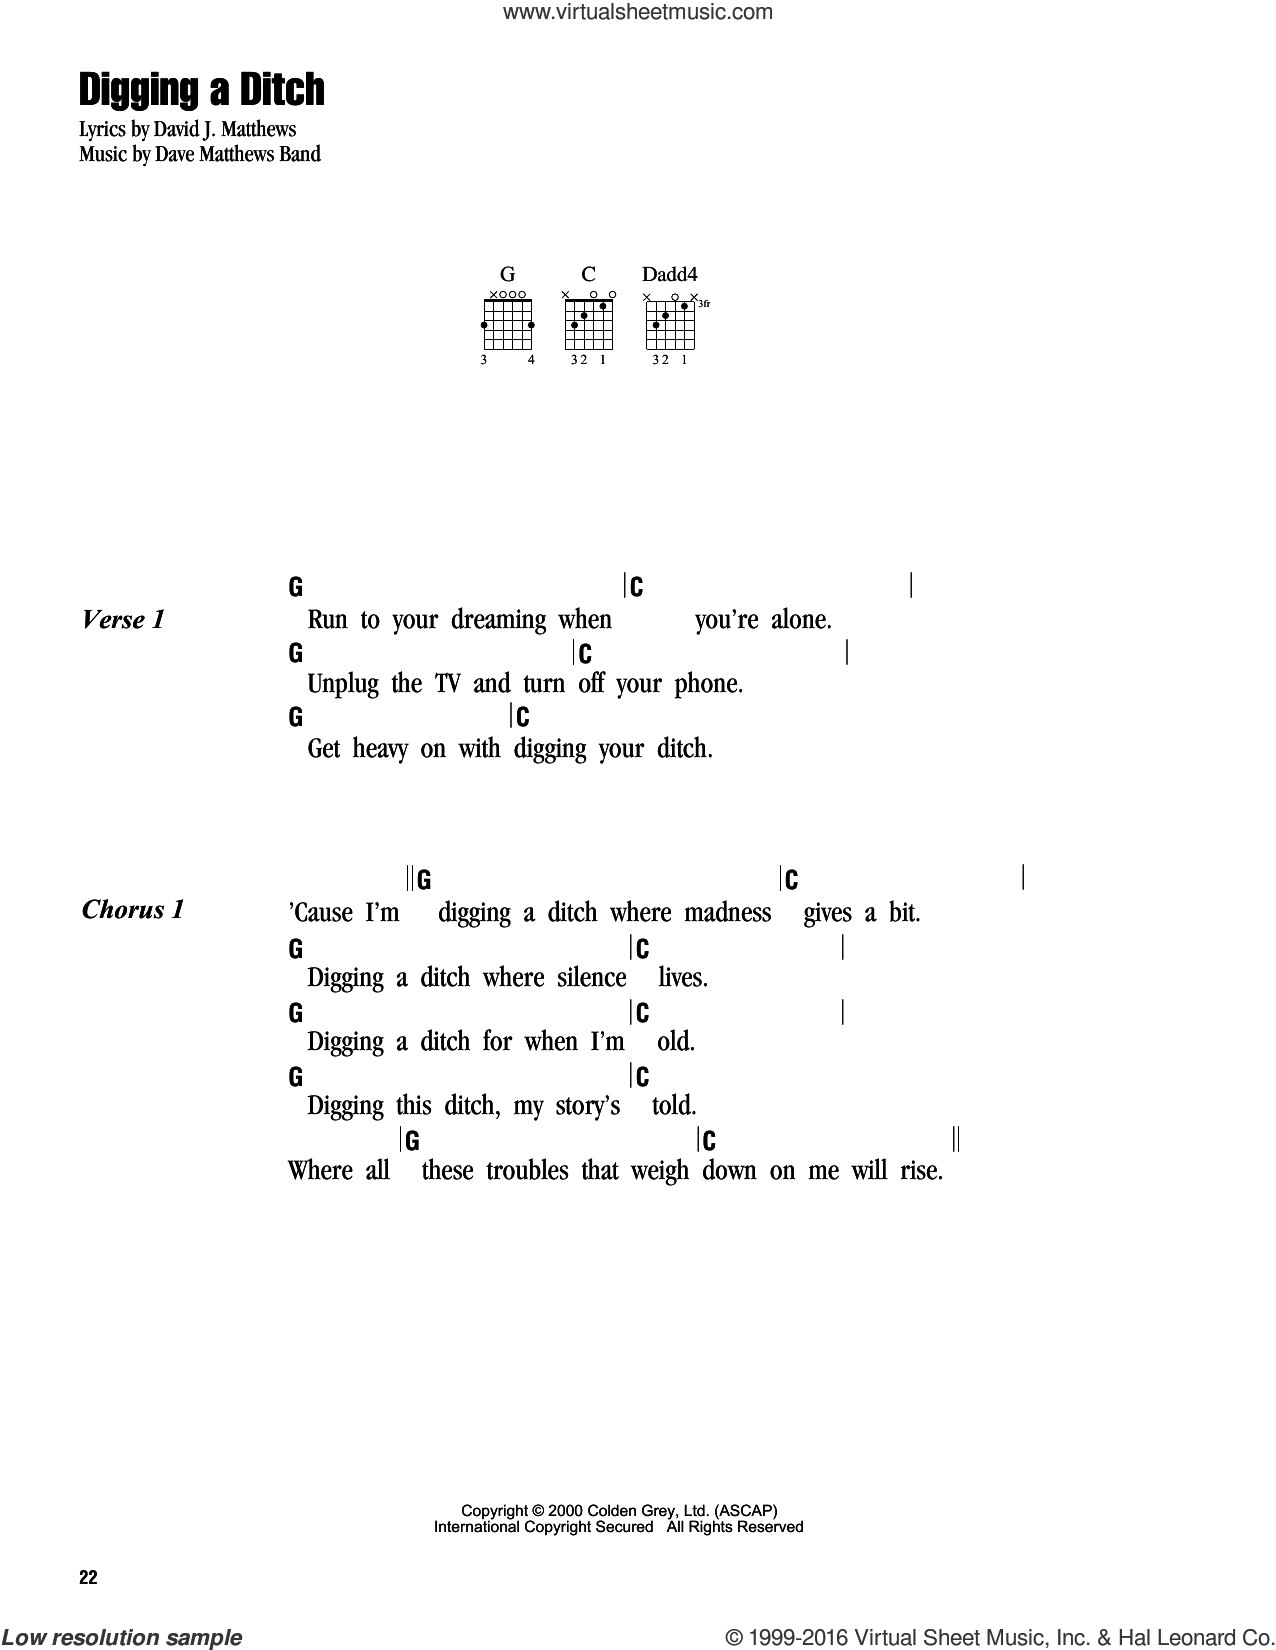 Digging A Ditch sheet music for guitar (chords) by Dave Matthews Band. Score Image Preview.